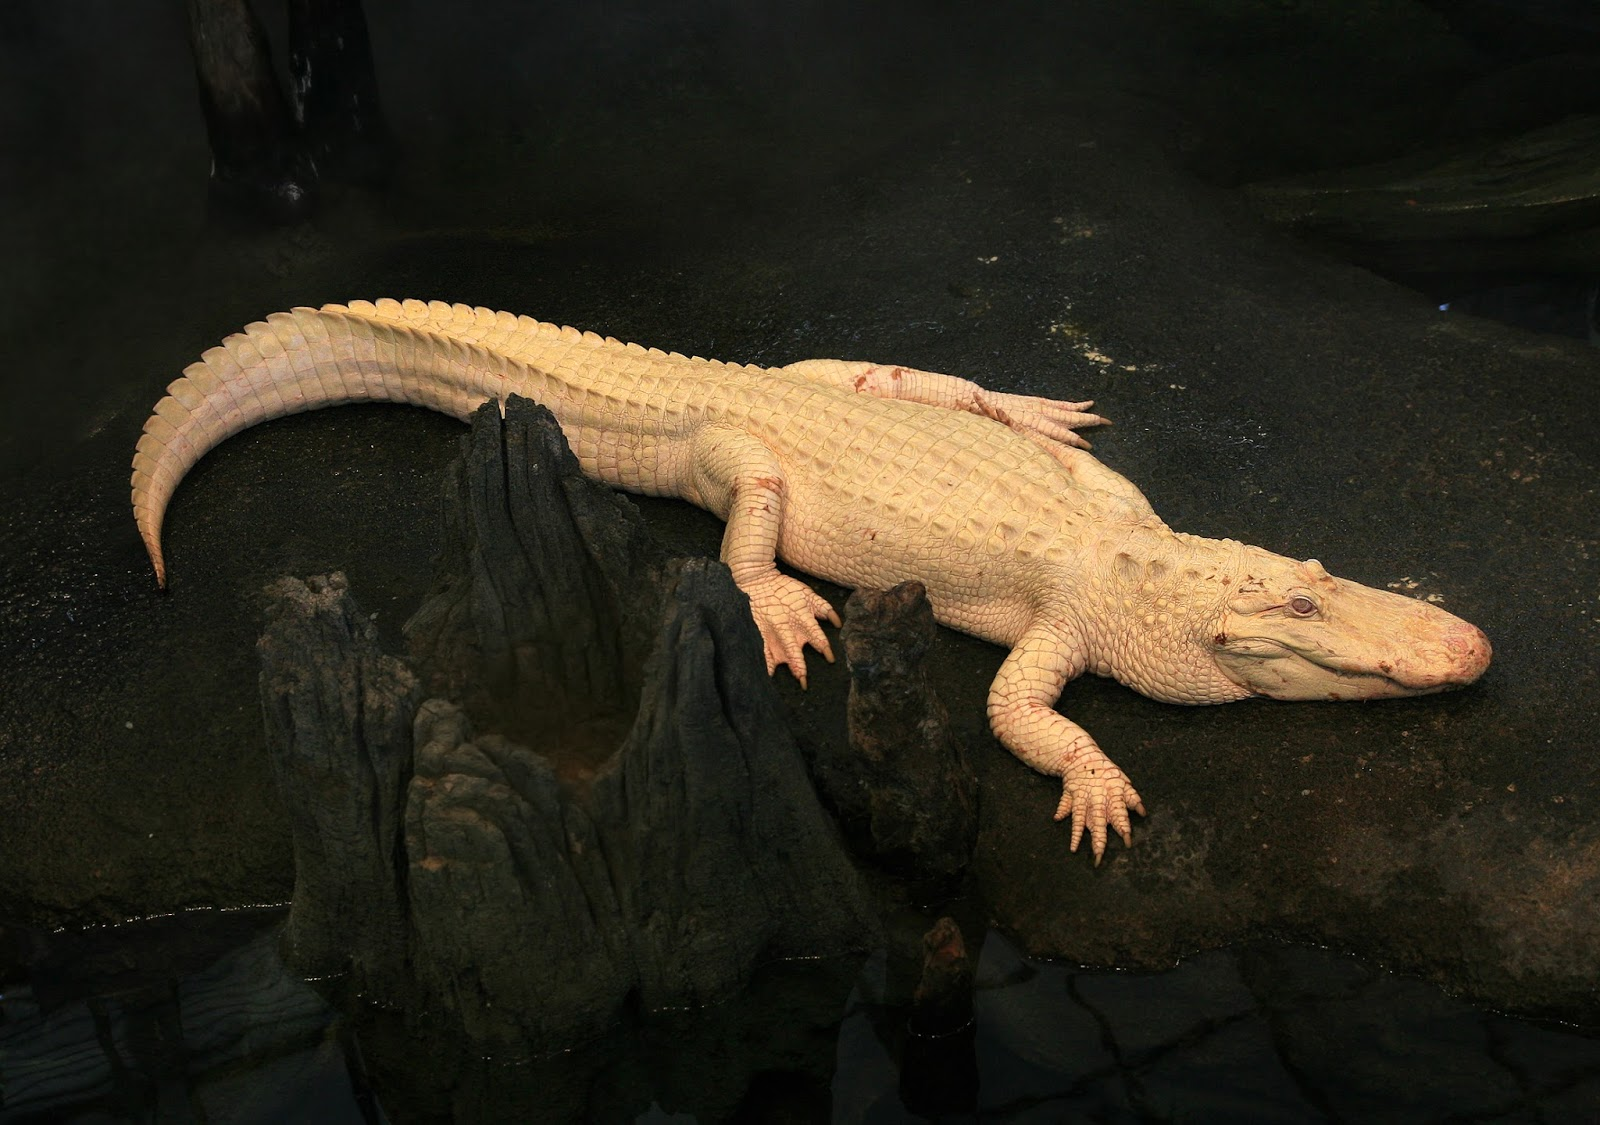 Reptiles: Albino Alligator